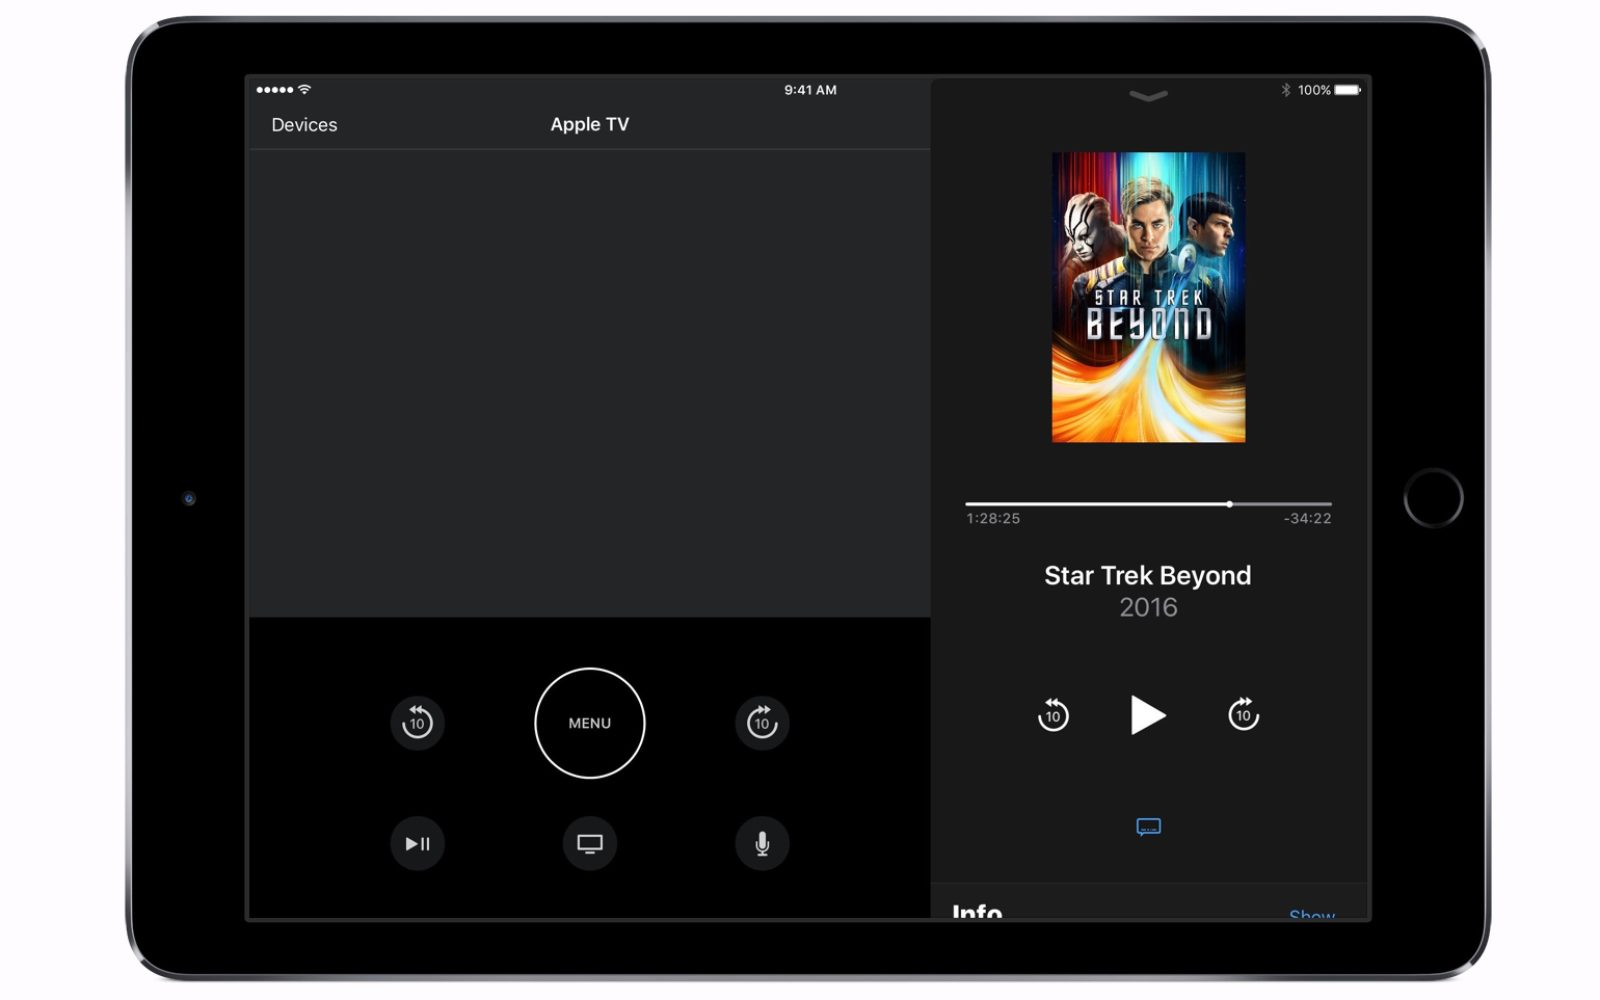 a6cdcda0878 Apple TV Remote app updated with iPad support, enhanced Now Playing, more